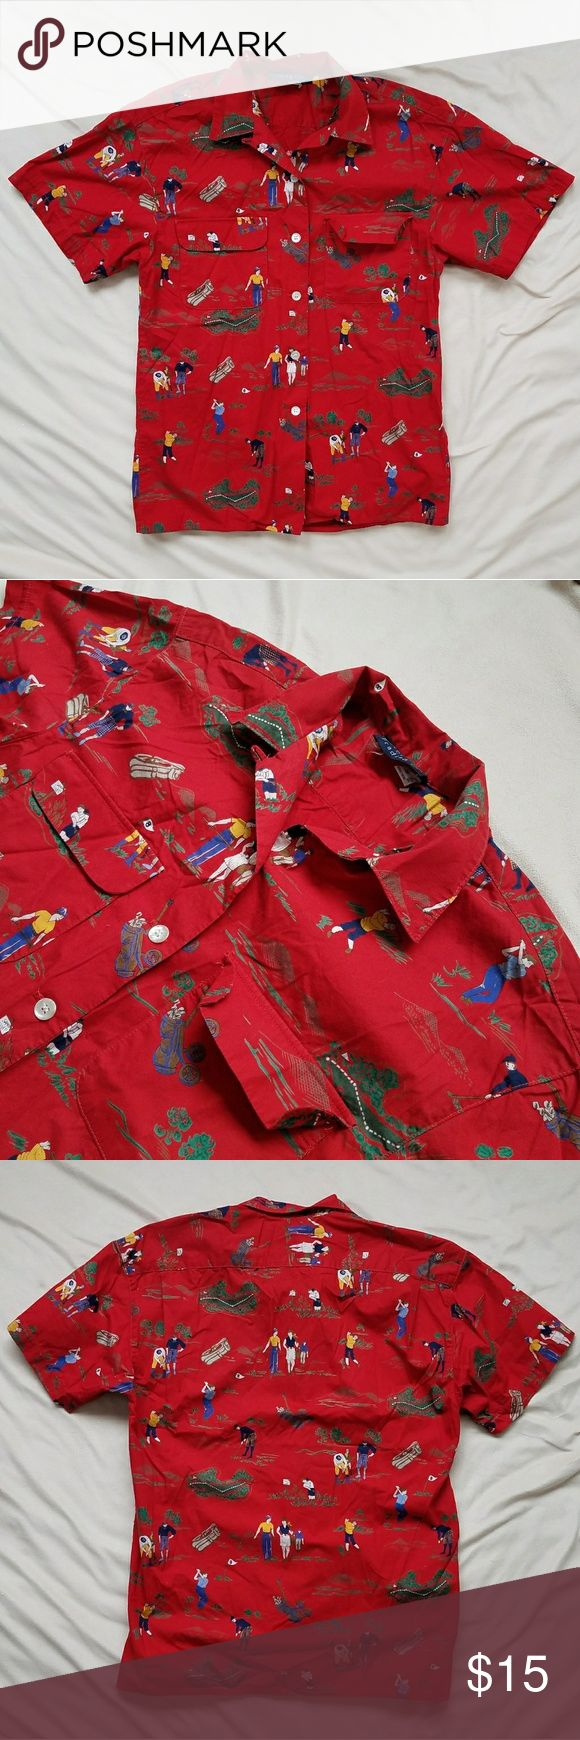 All Over Golf Print Button Up Dark red backround with various golfer illistrations, landscapes, and golf bags scattered all over the shirt. Two front chest pockets with ivory buttons.   Sized mens small and fits as such. Very light wash wear with no damage or stains present. Great condition! River Trading Company Shirts Casual Button Down Shirts